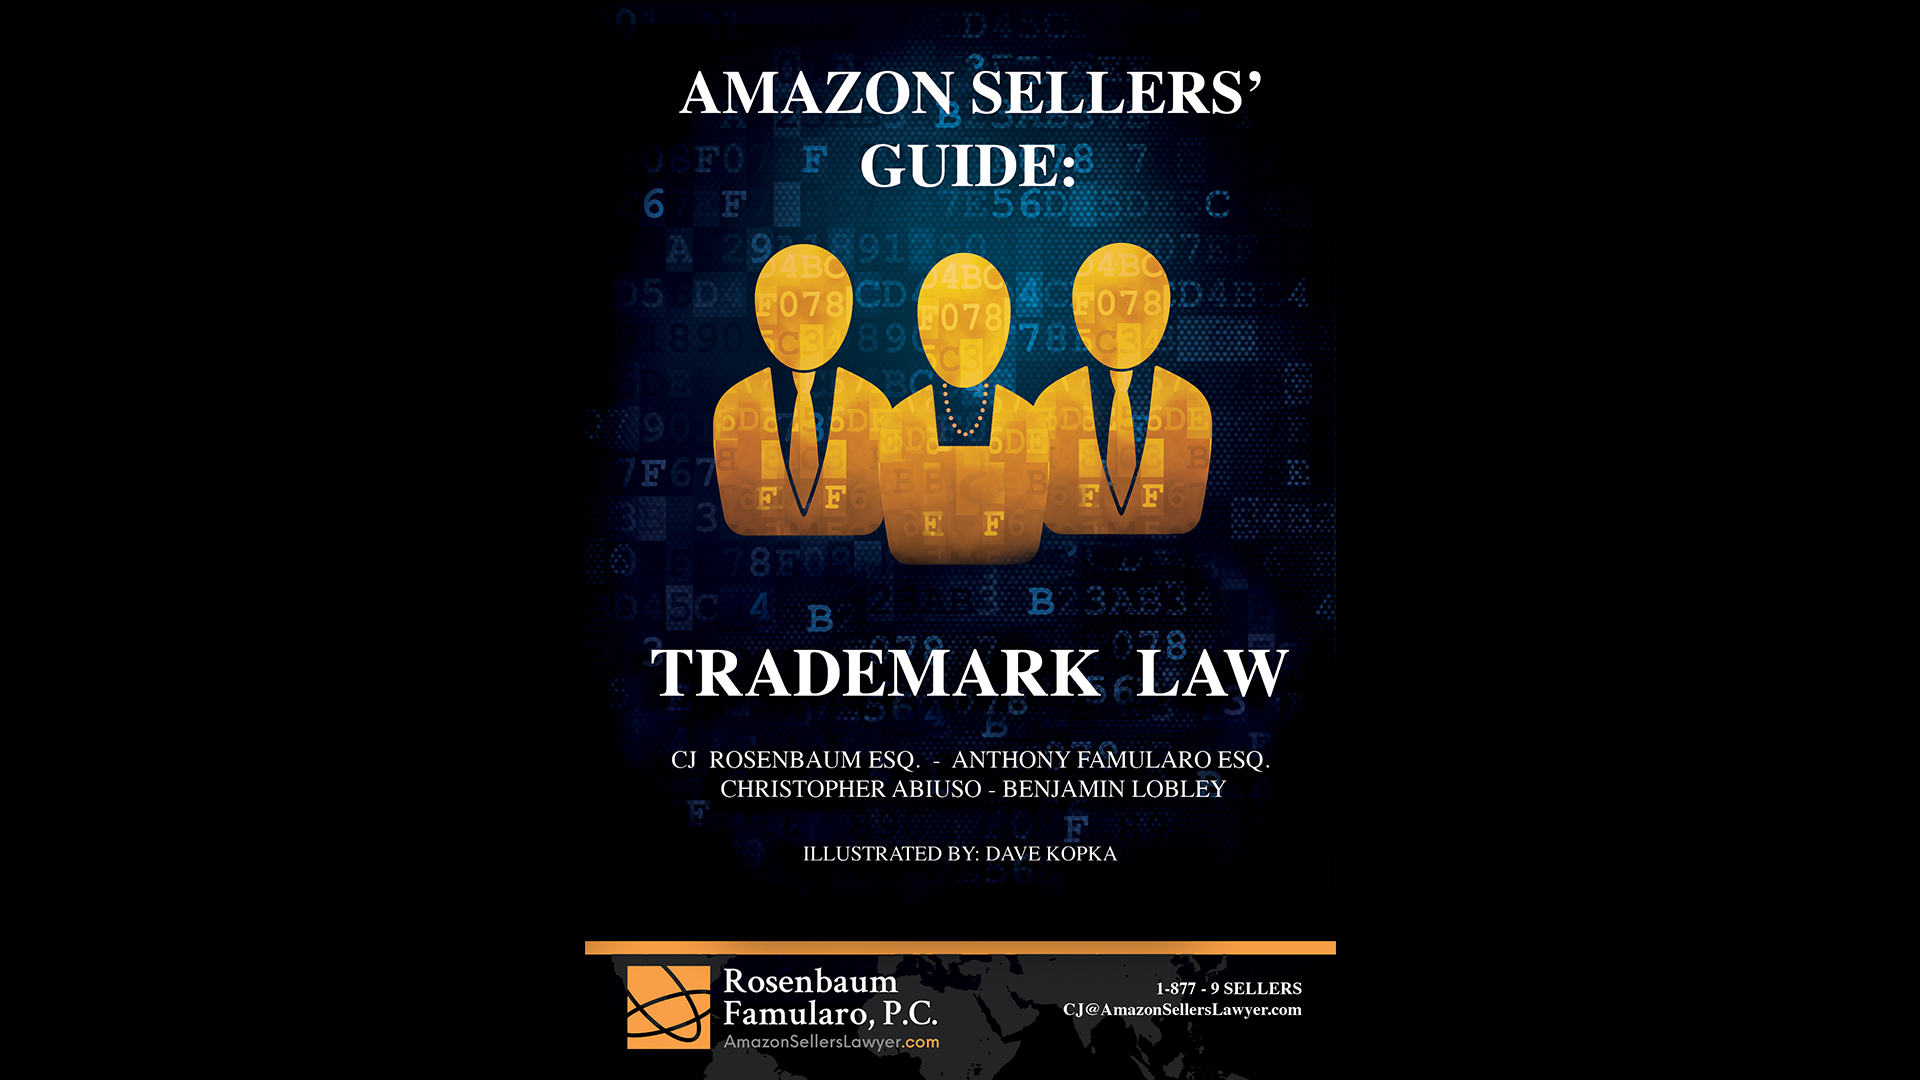 Amazon Sellers Guide - Trademark Law